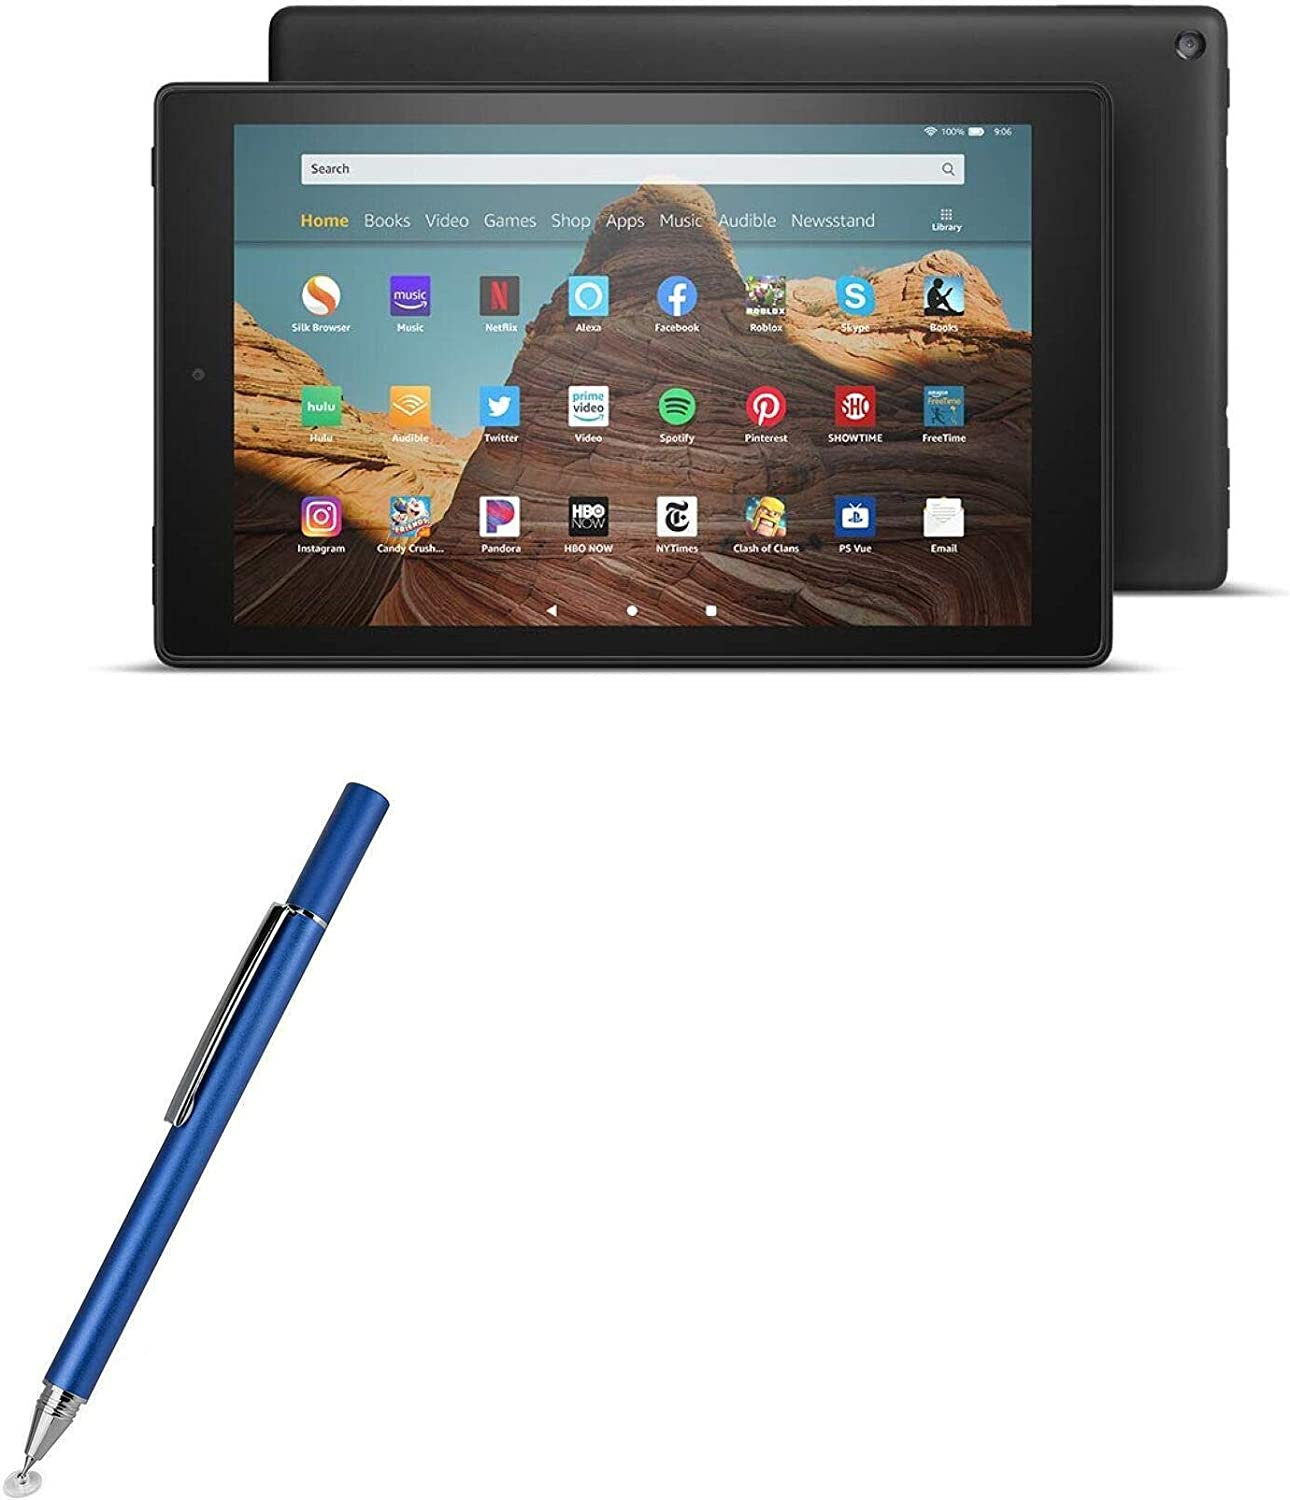 Amazon Fire HD 10 (2019) Stylus Pen, BoxWave [FineTouch Capacitive Stylus] Super Precise Stylus Pen for Amazon Fire HD 10 (2019) - Lunar Blue